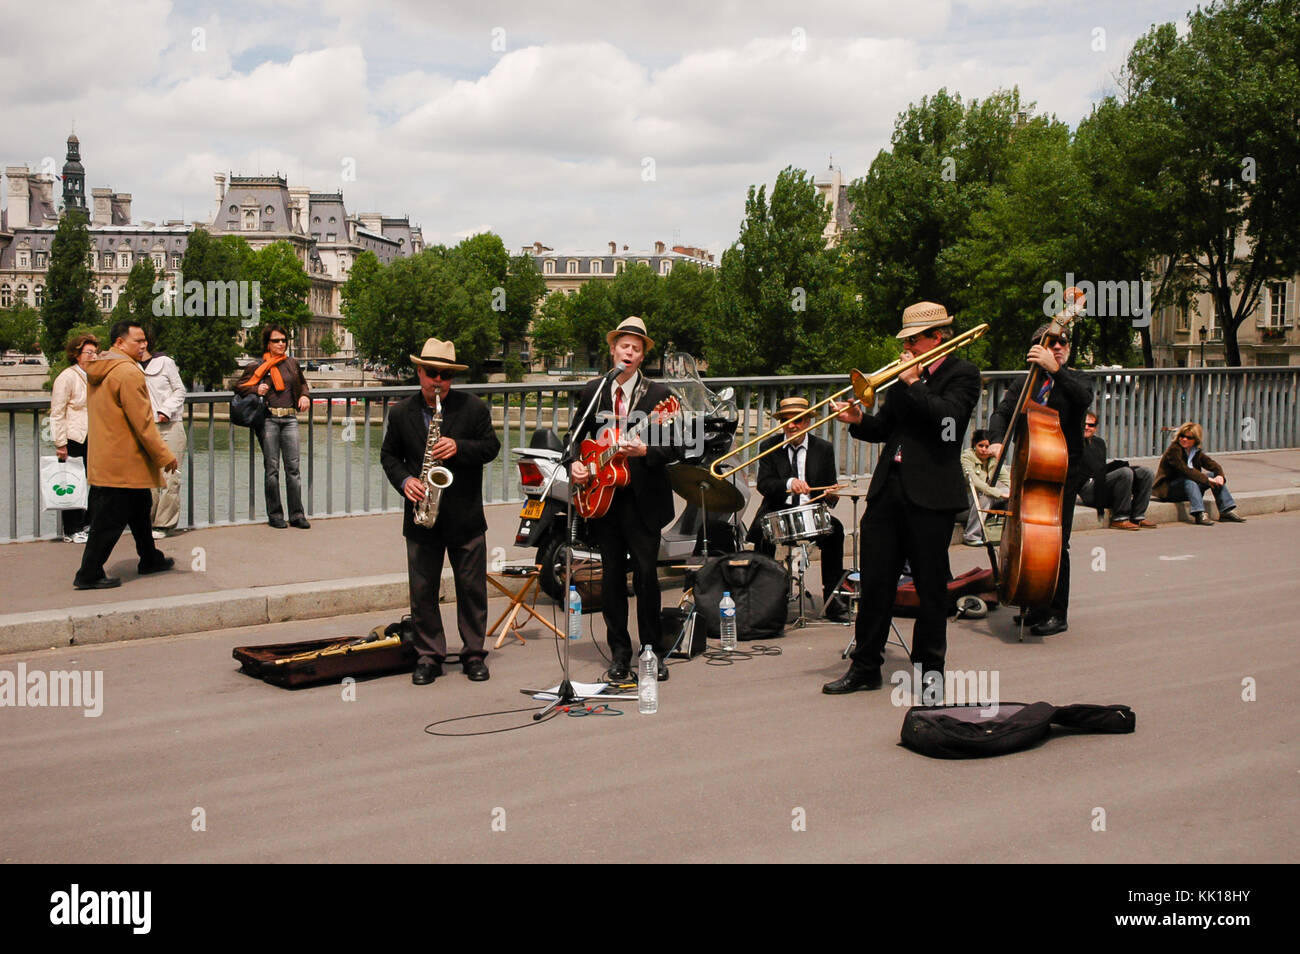 Jazz band entertains tourists on the The pont Saint-Louis bridge across the River Seine beside Notre-Dame Cathedral - Stock Image